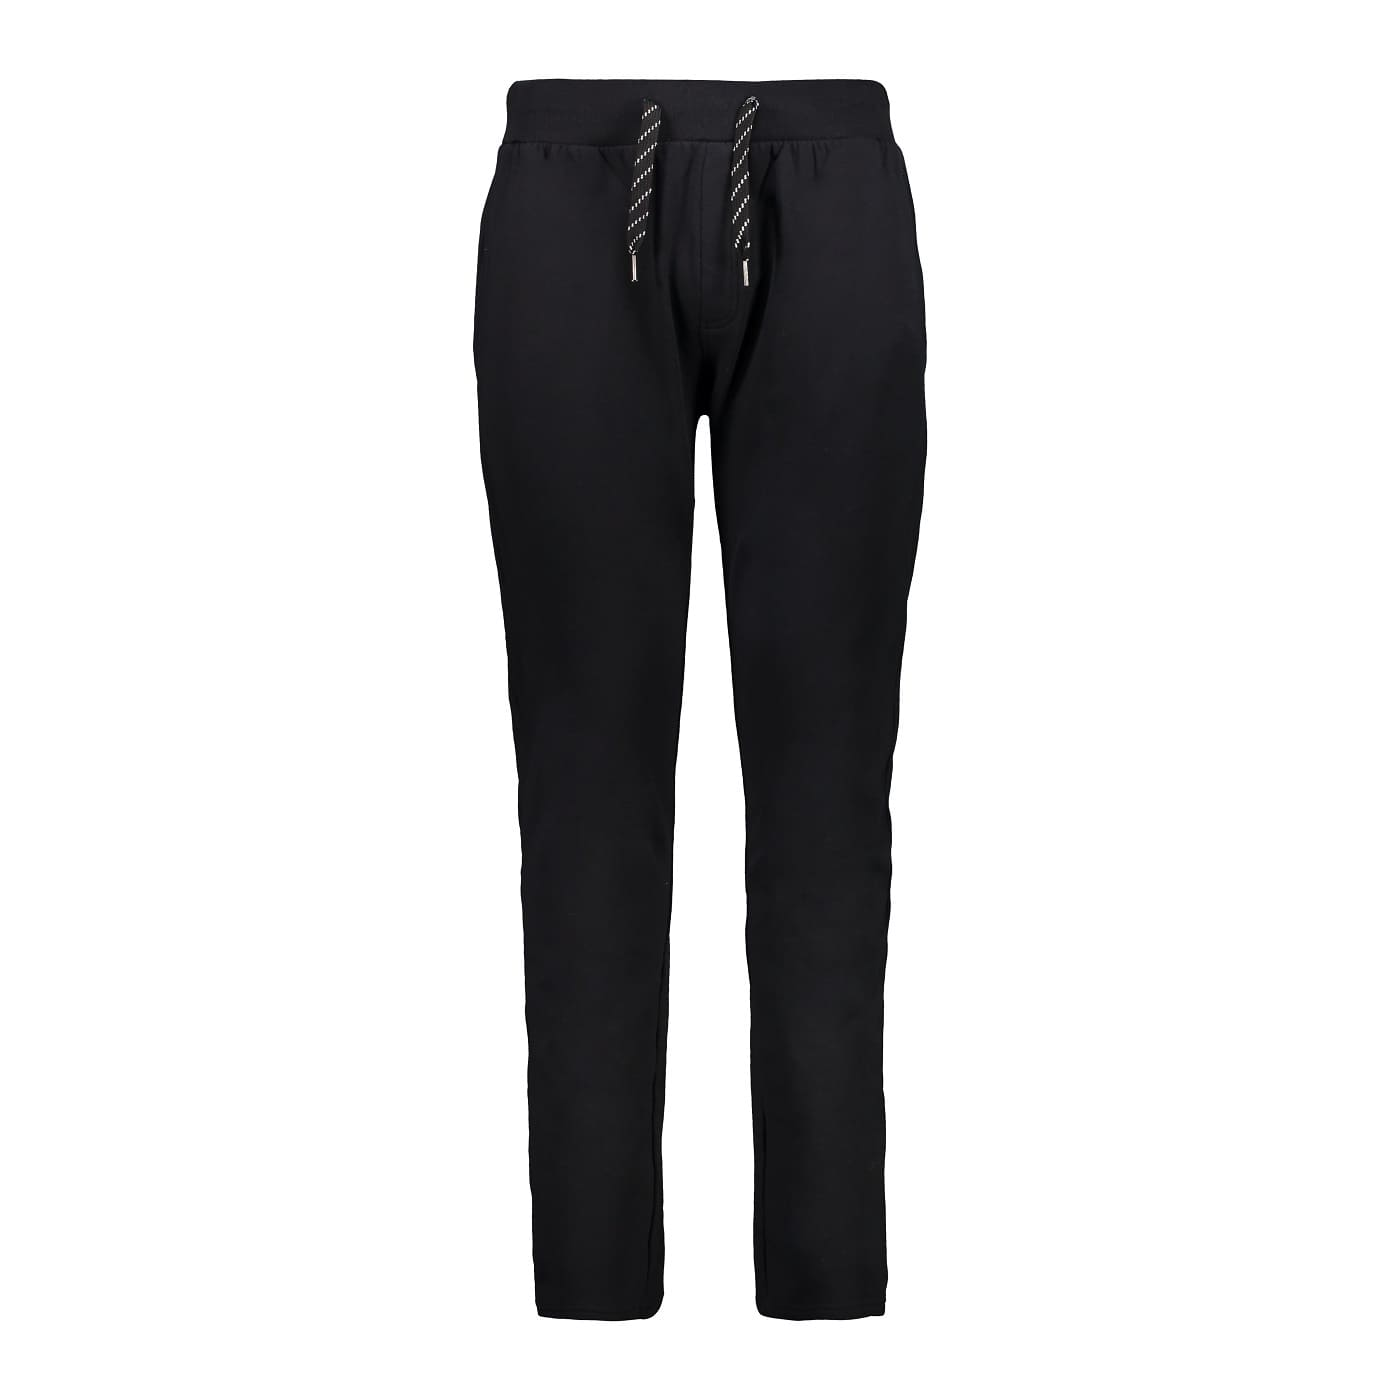 CMP MAN LONG PANT NERO - 56